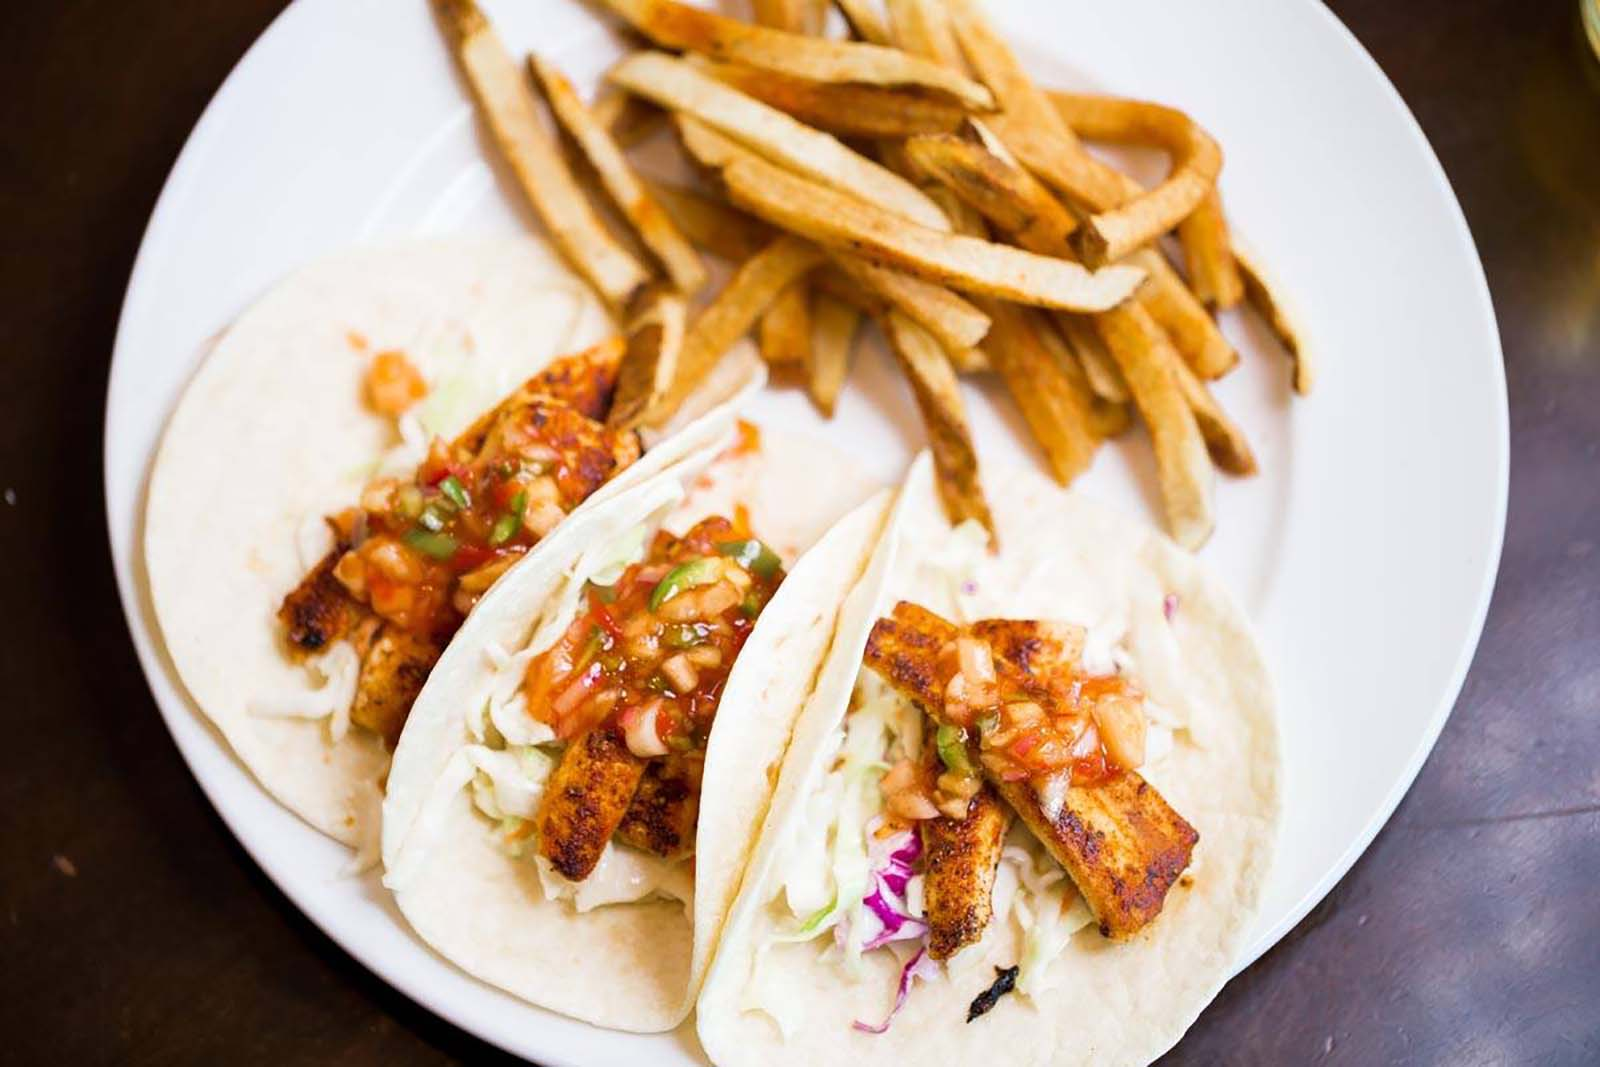 Soft tacos with with fries